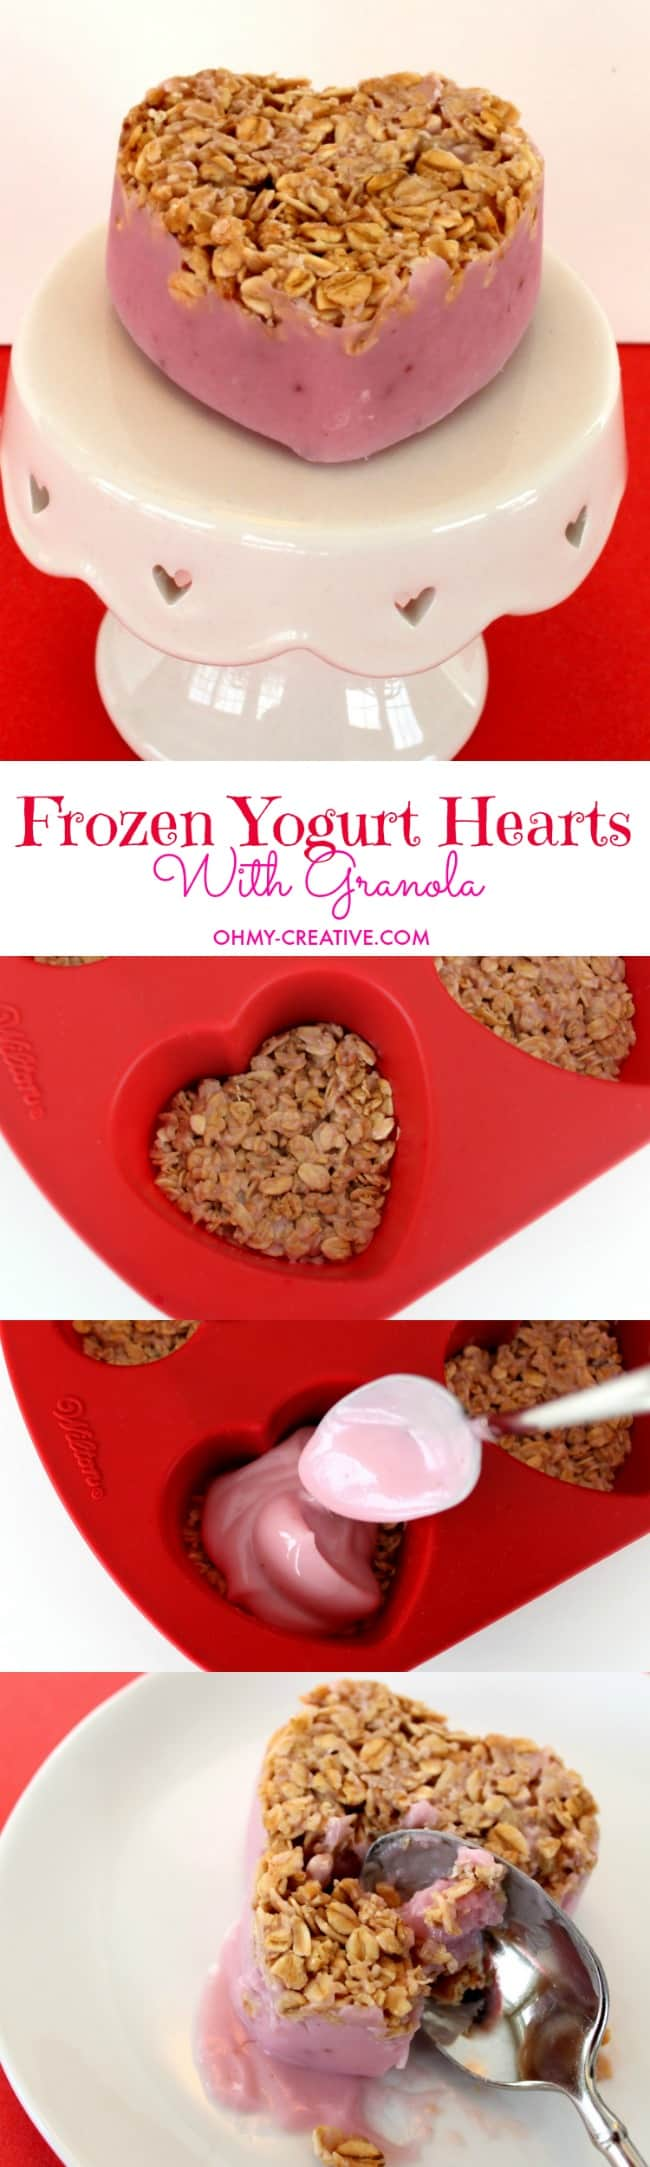 Frozen-Yogurt-Hearts-made-with-Granola-OHMY-CREATIVE.COM_